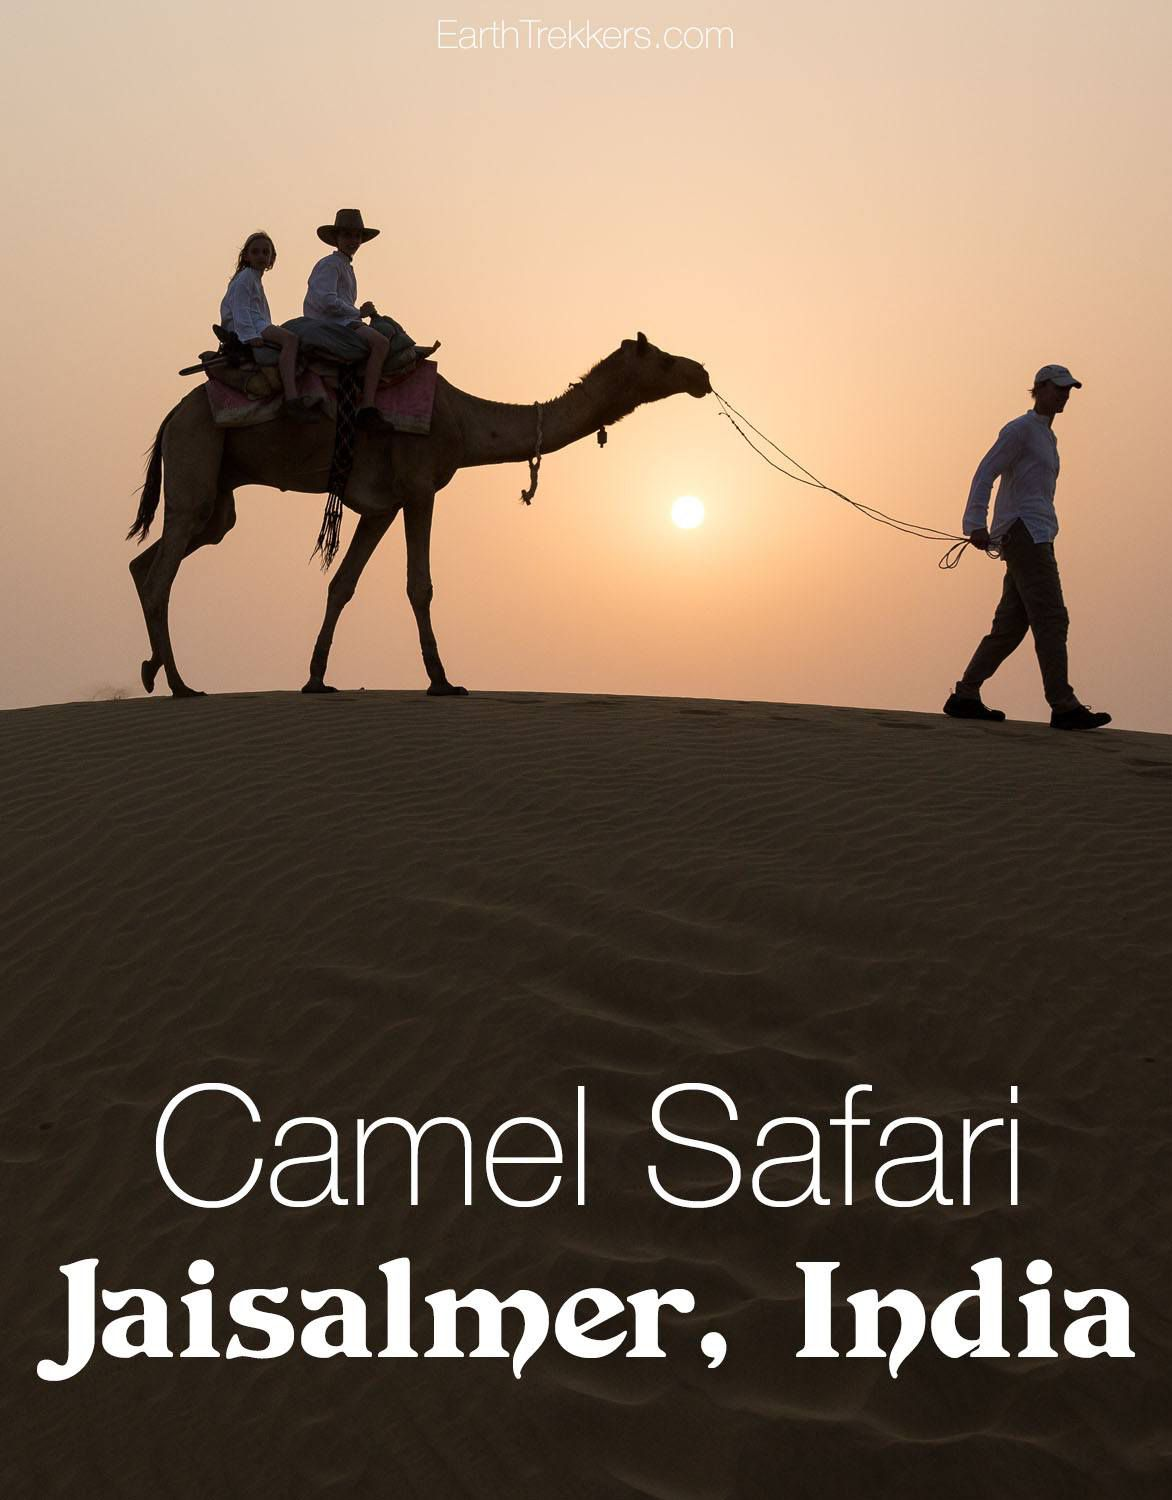 Camel Safari Jaisalmer India